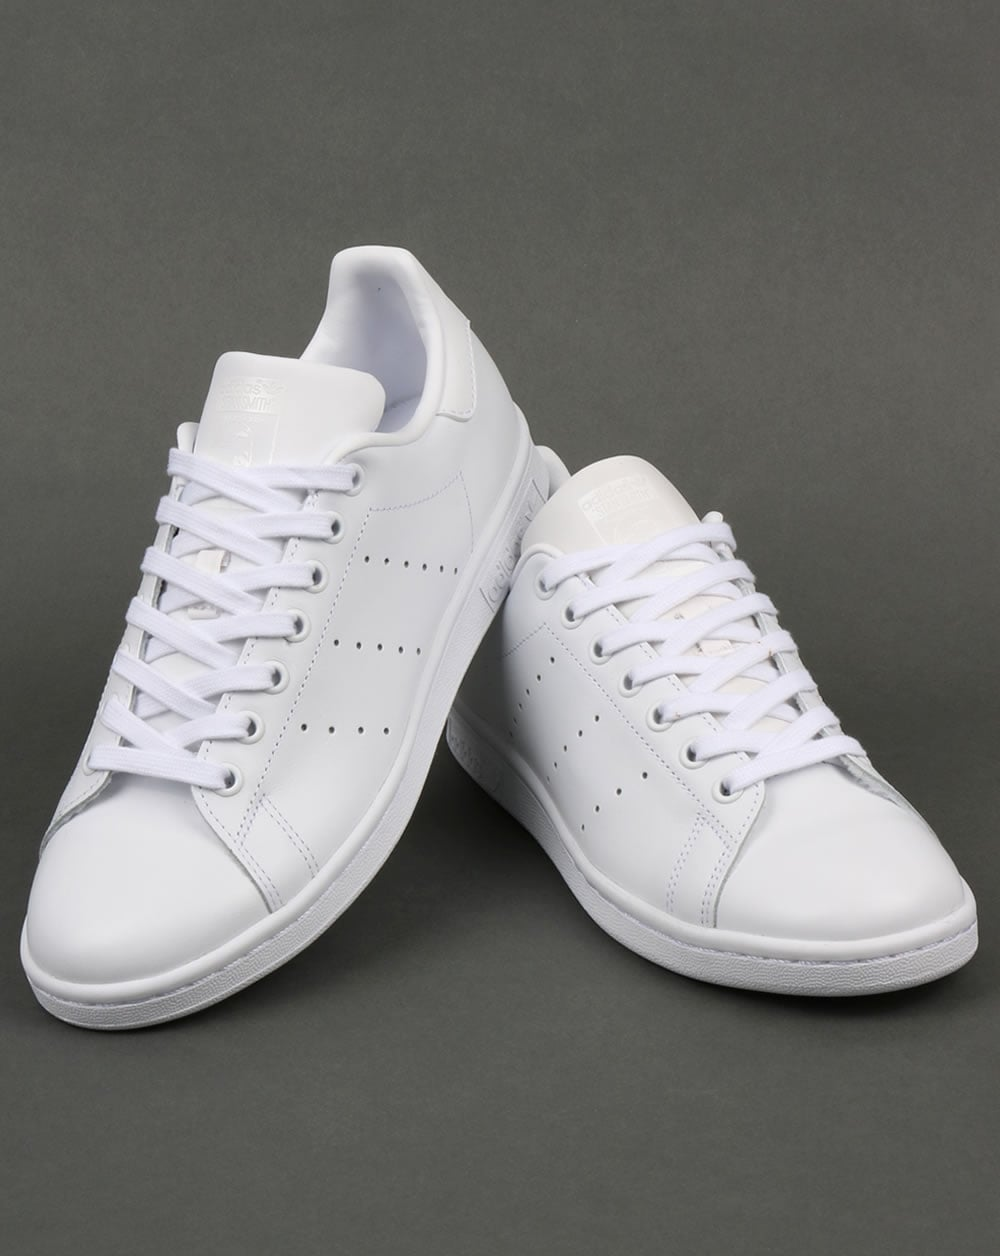 Adidas Stan Smith Trainers Triple White,originals,shoes ... Caterpillar Shoes